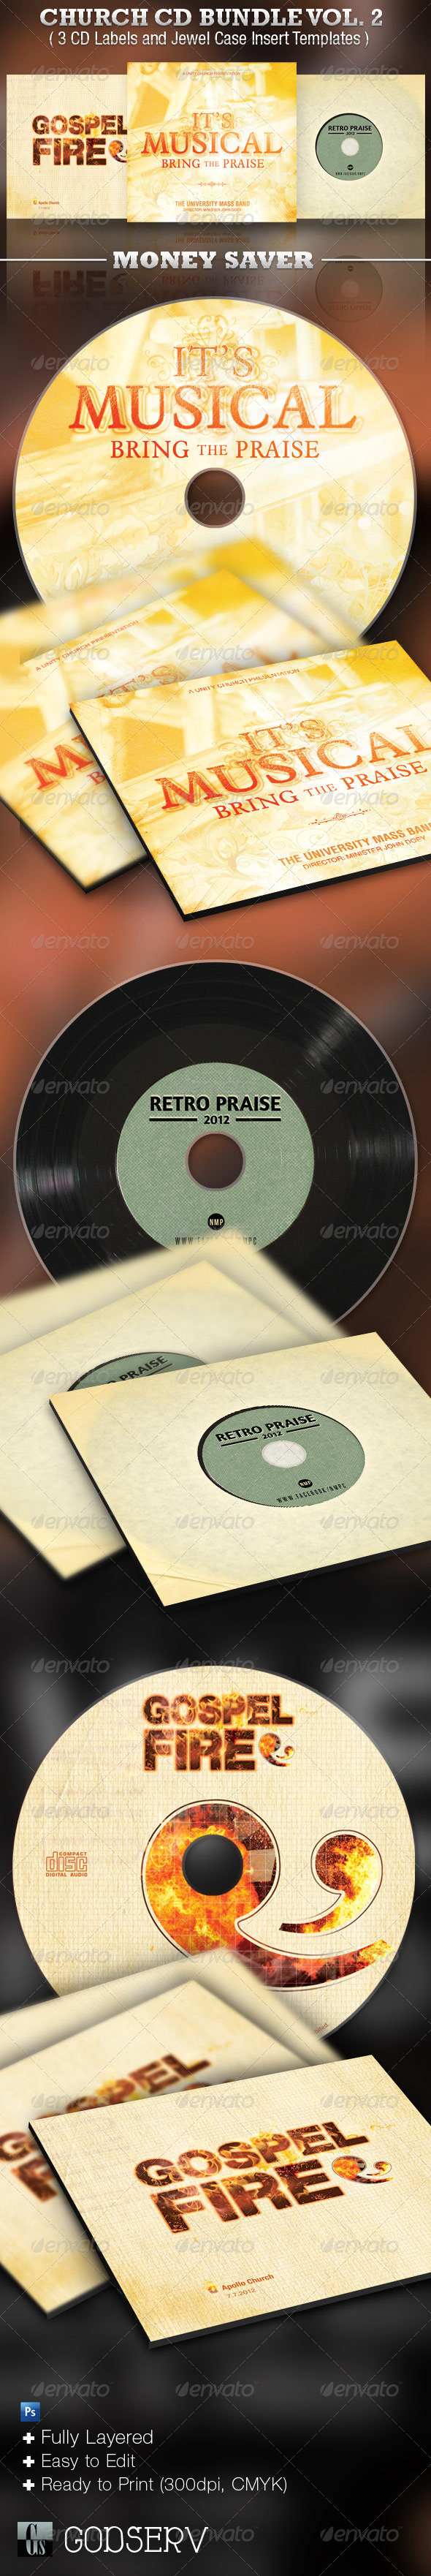 Church CD Template Bundle Vol. 2 - CD & DVD artwork Print Templates